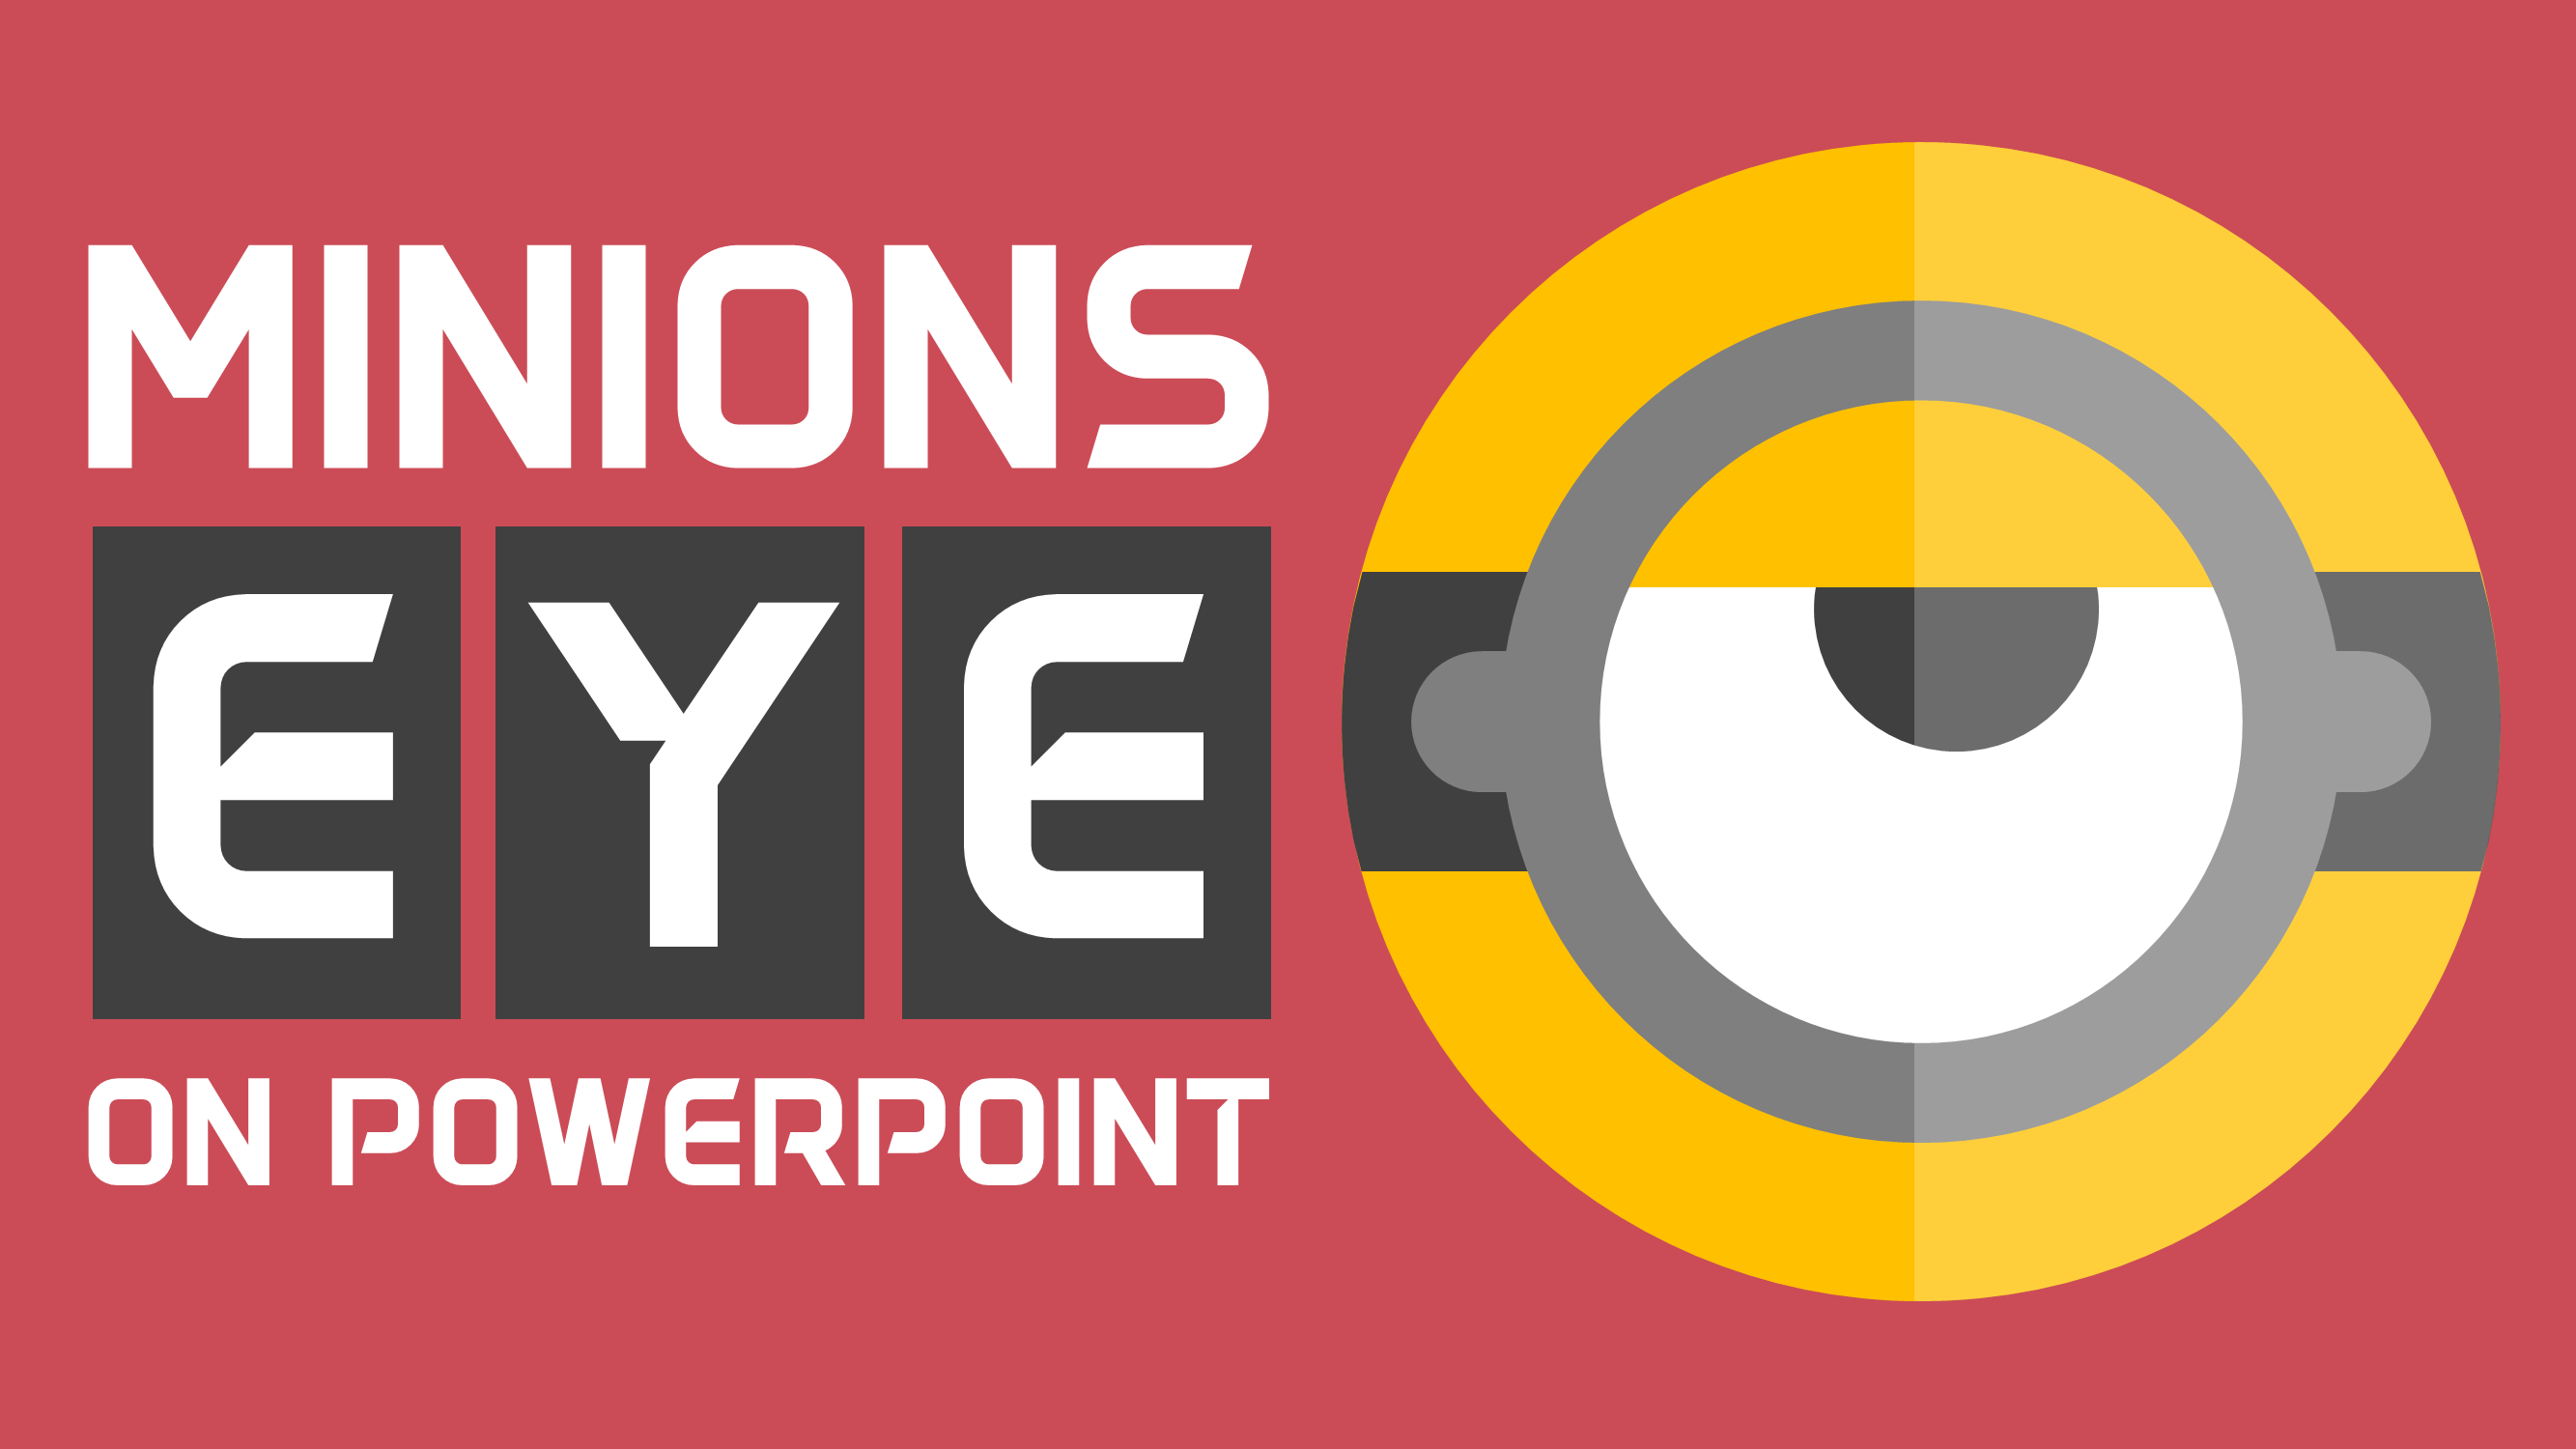 2667x1500 Minions Eye Vector Icon Design In Powerpoint Icon Design In